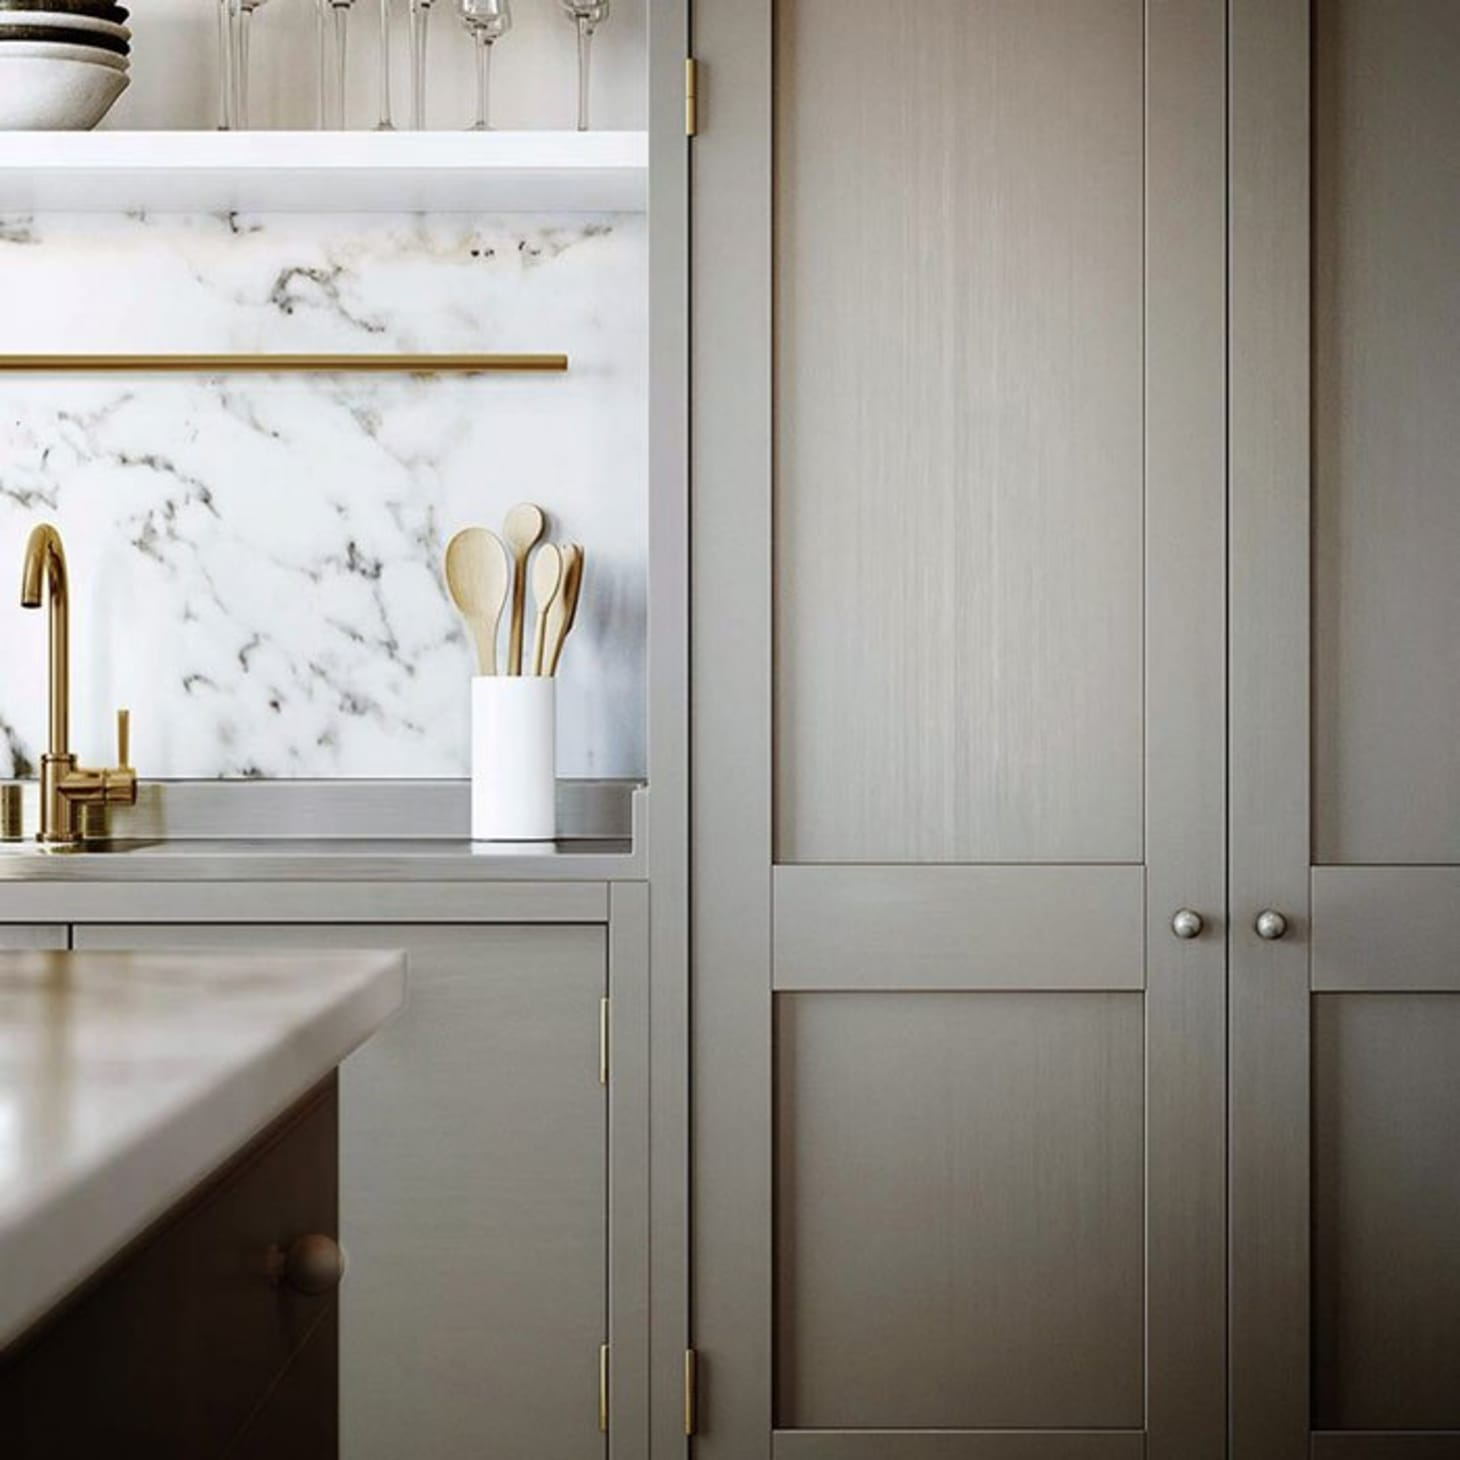 Phenomenal Marble Countertops 101 Yes Theyre A Great Idea Machost Co Dining Chair Design Ideas Machostcouk